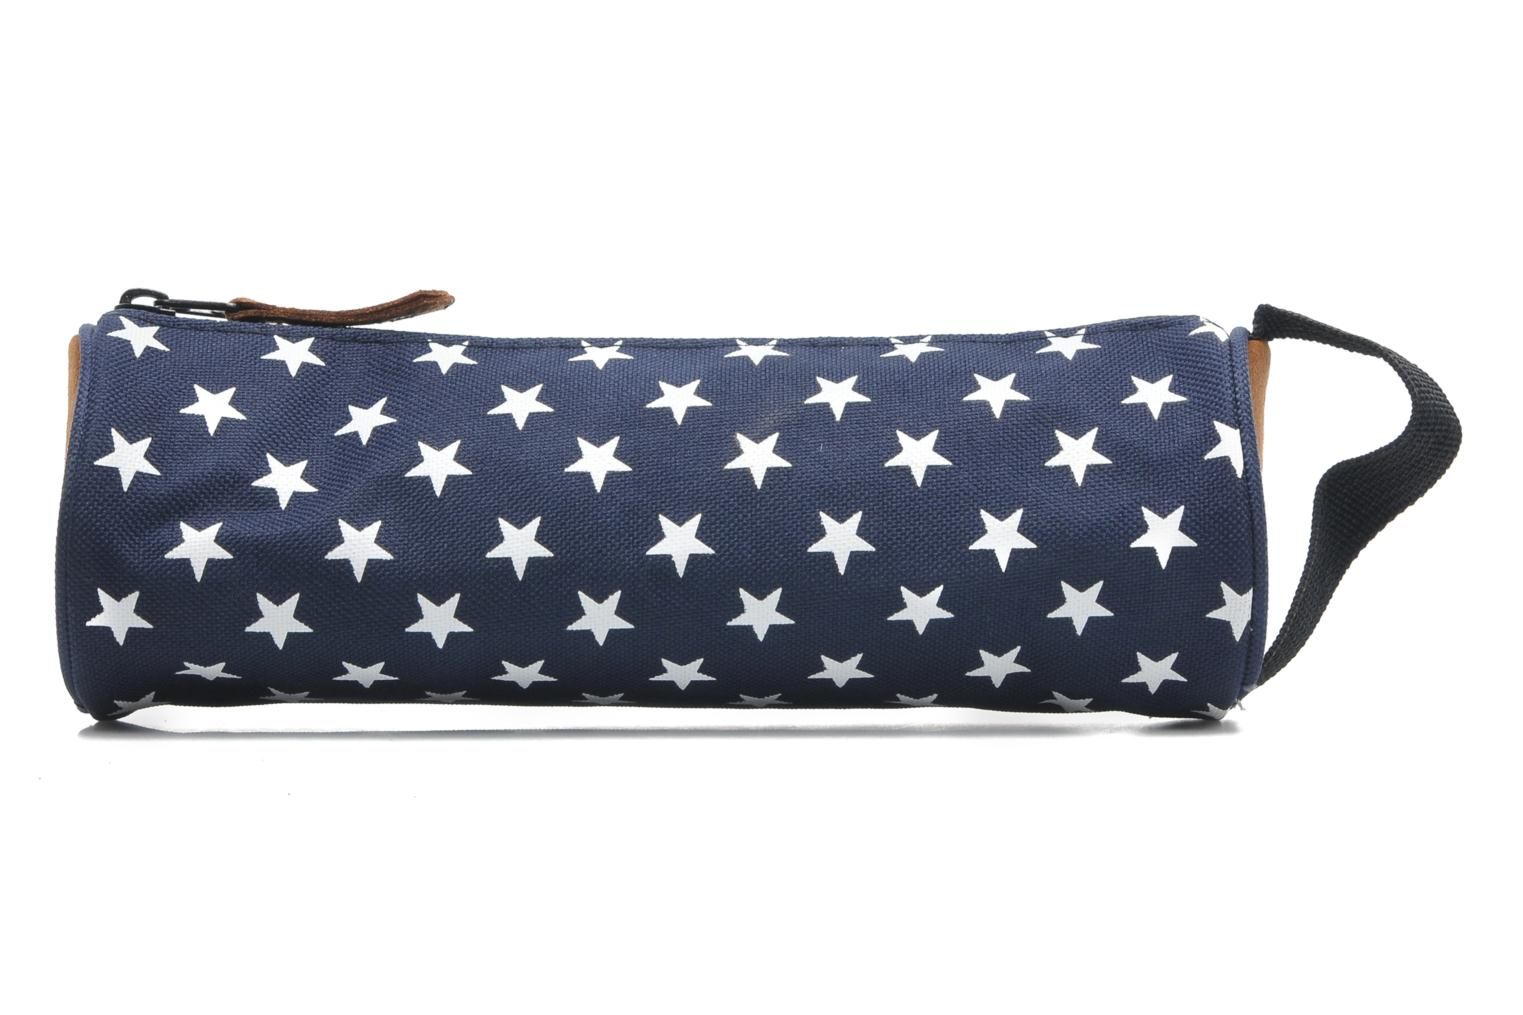 Cases All star navy